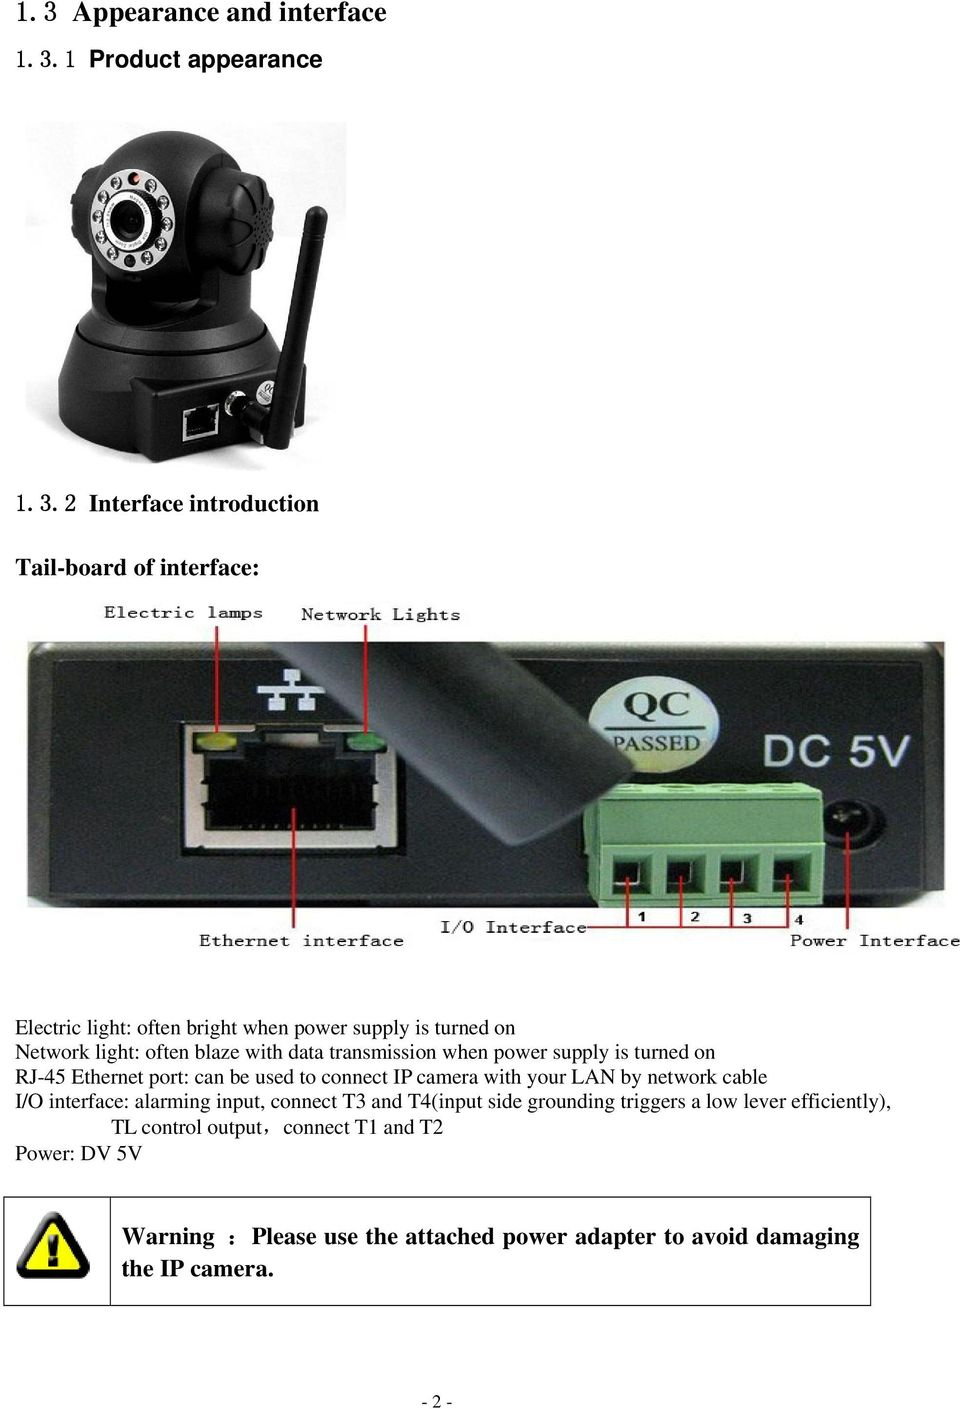 connect IP camera with your LAN by network cable I/O interface: alarming input, connect T3 and T4(input side grounding triggers a low lever